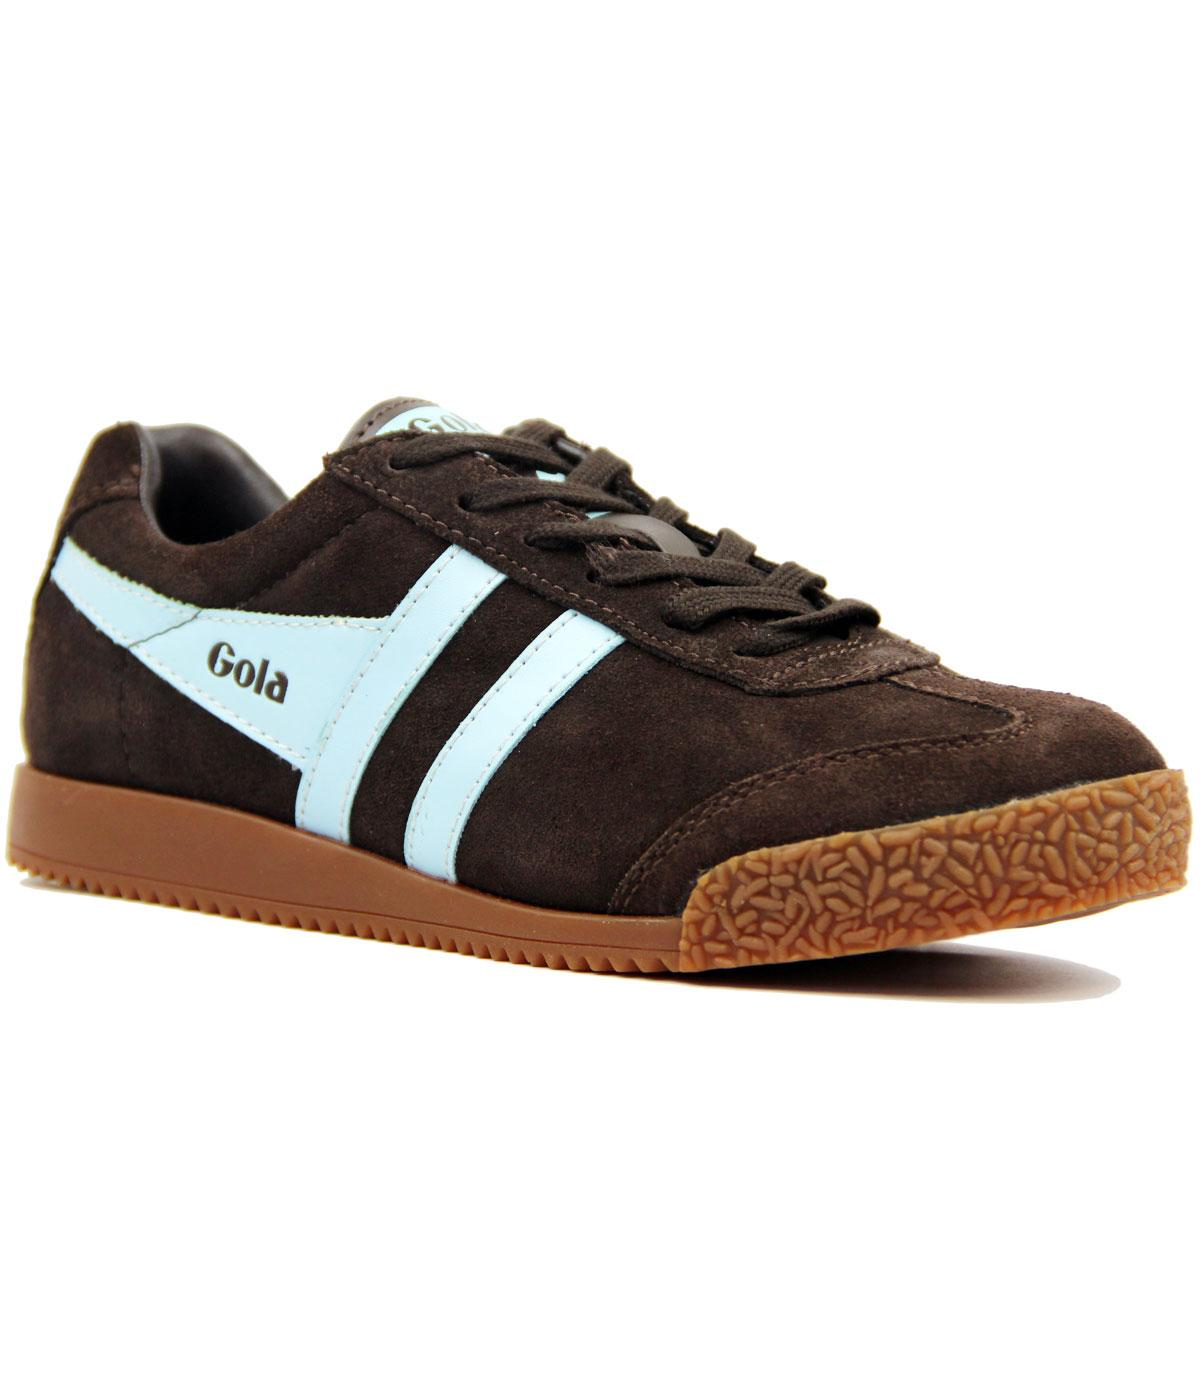 GOLA Harrier Womens Retro 70s Suede Trainers BROWN